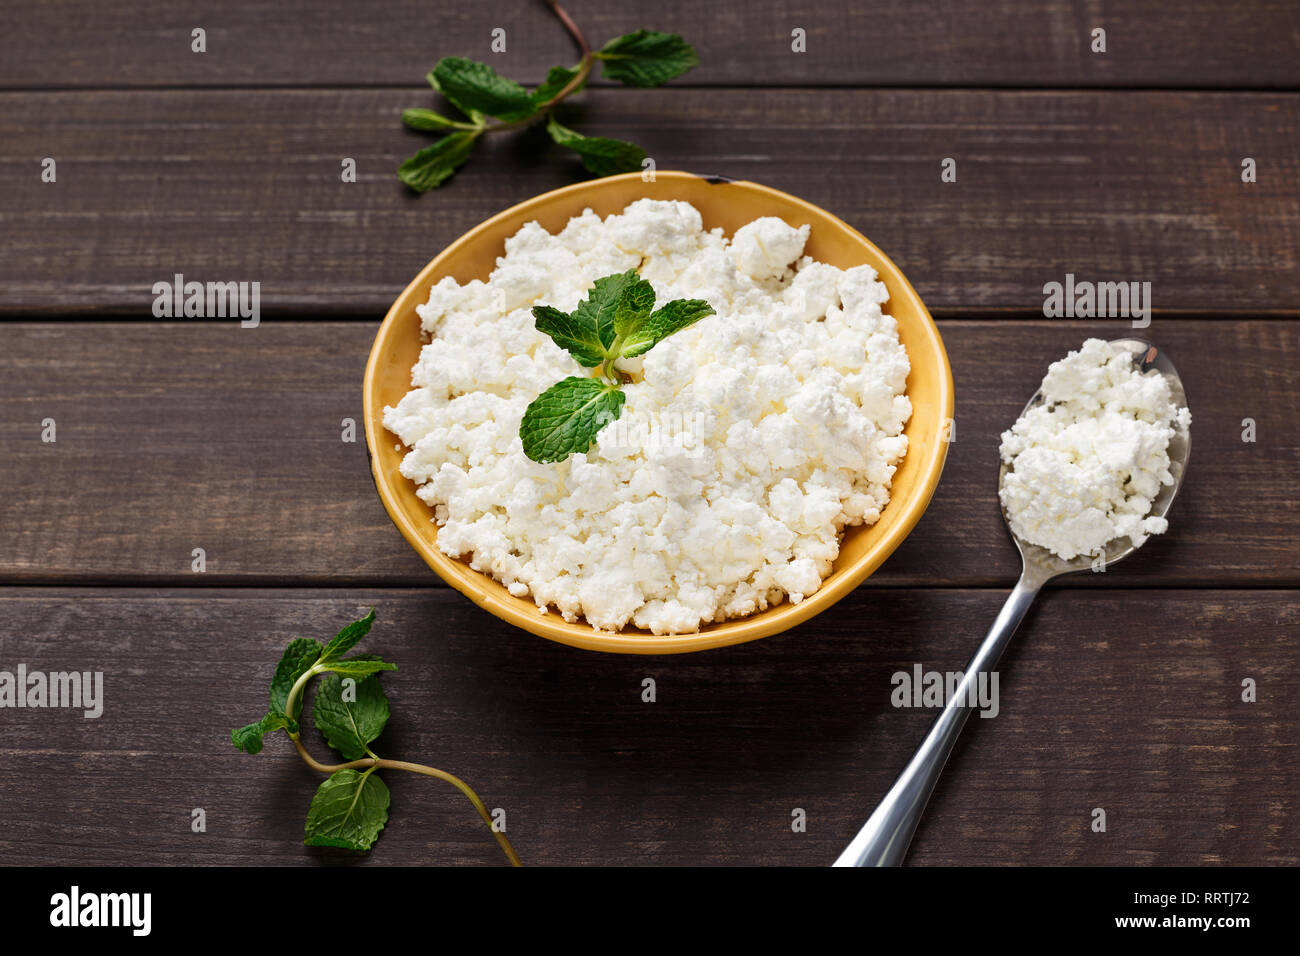 Fresh homemade cottage cheese - Stock Image